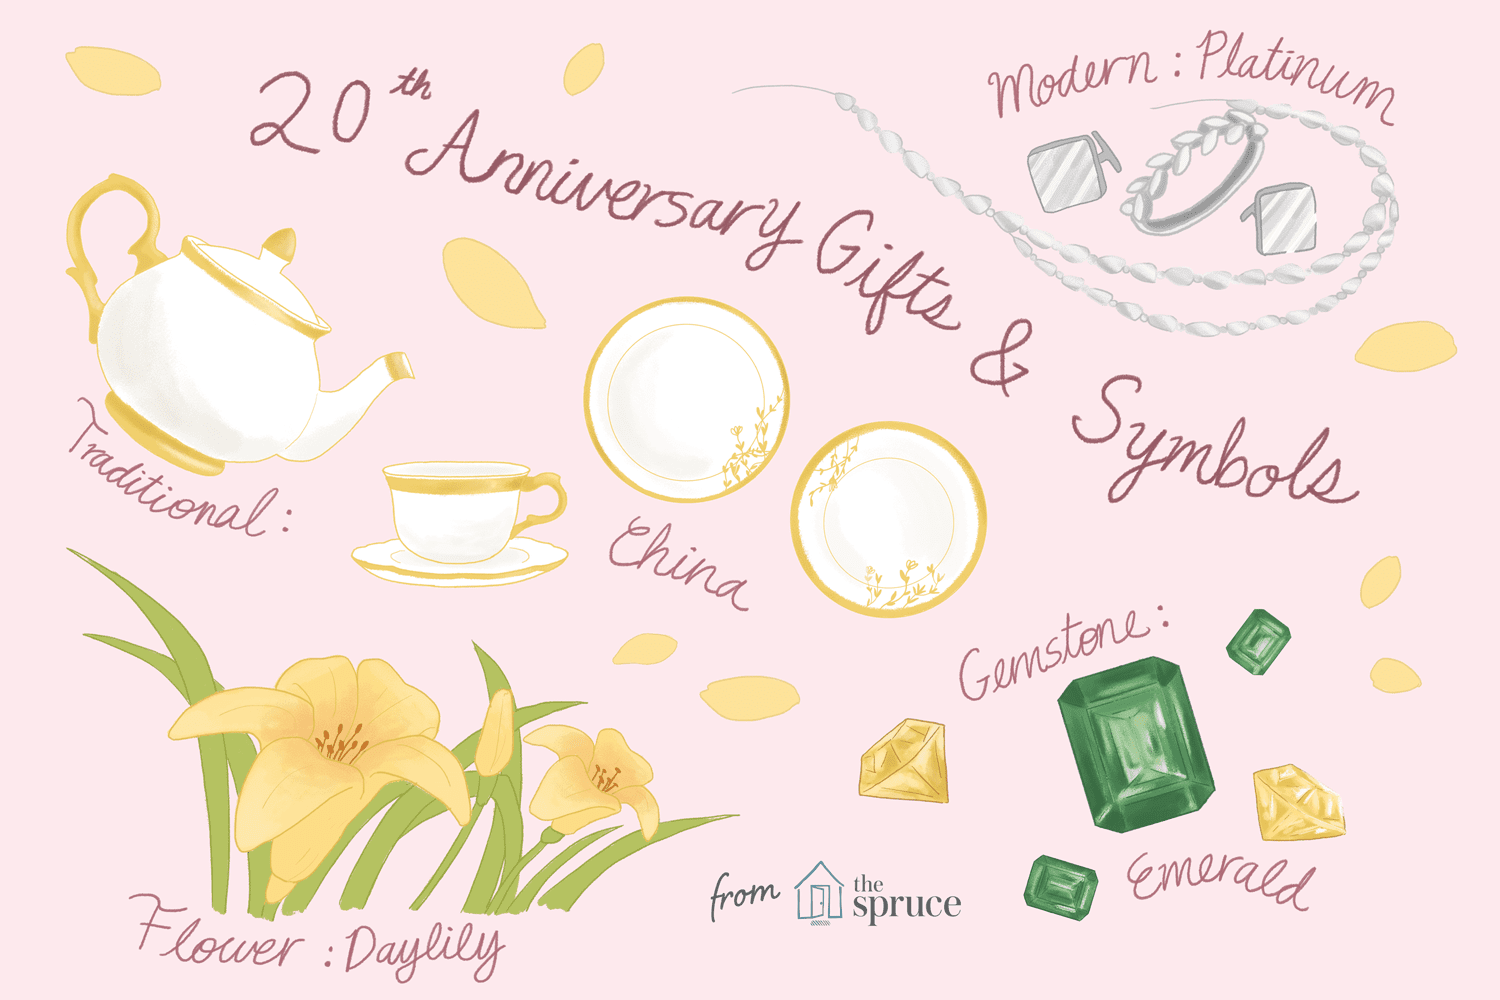 20th Anniversary Celebration Suggestions